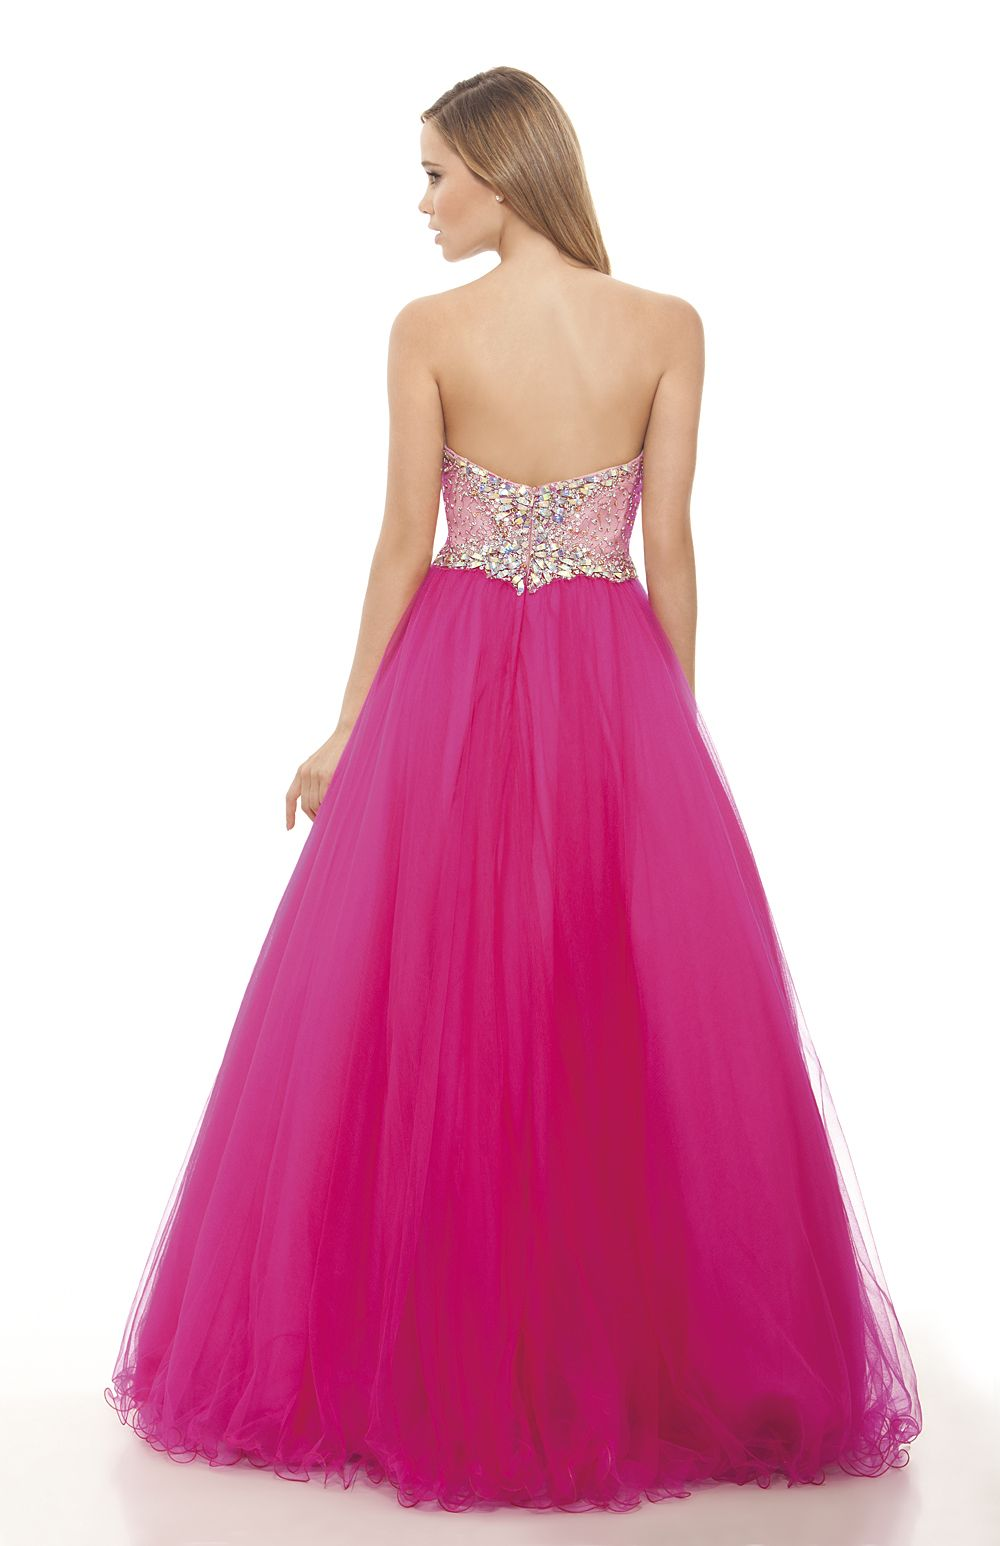 Eleni Elias Collection Official Web Site - Prom Collection - Style ...